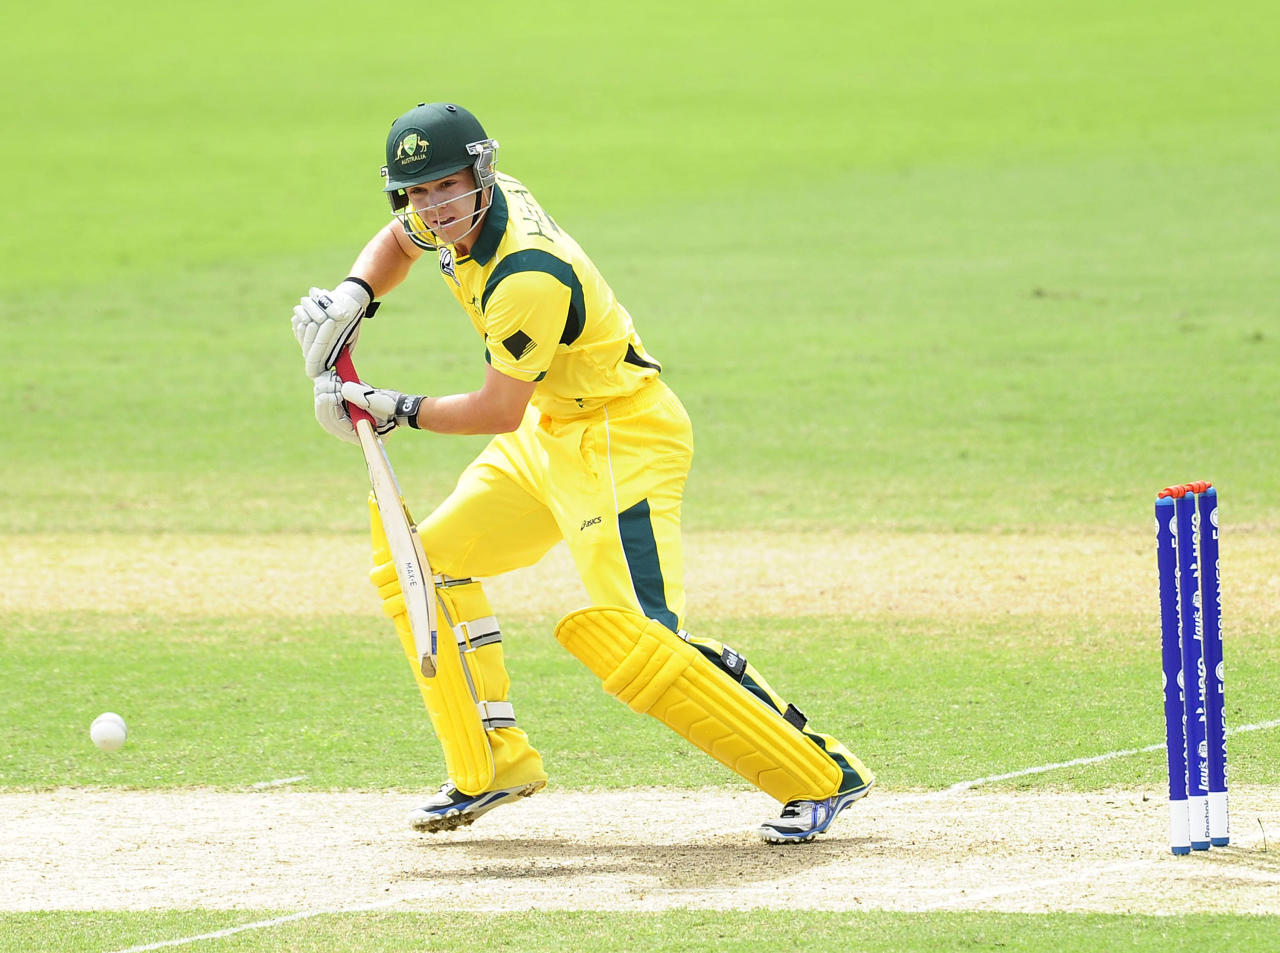 TOWNSVILLE, AUSTRALIA - AUGUST 26:  Travis Head of Australia bats during the 2012 ICC U19 Cricket World Cup Final between Australia and India at Tony Ireland Stadium on August 26, 2012 in Townsville, Australia.  (Photo by Ian Hitchcock-ICC/Getty Images)